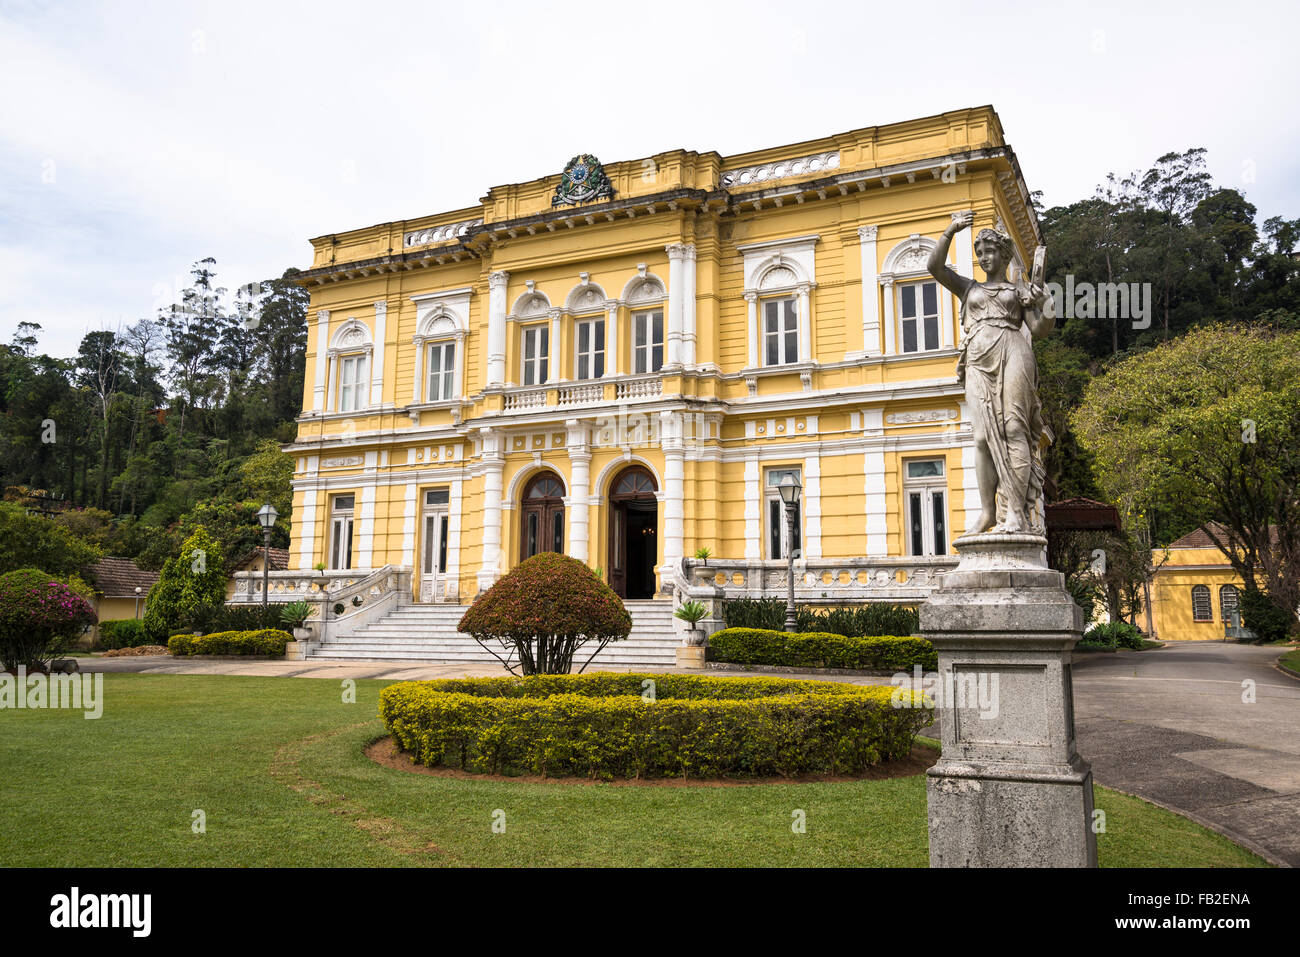 Rio Negro Palace, official summer residence of the Presidents of Brazil, Petropolis, state of Rio de Janeiro, Brazil - Stock Image